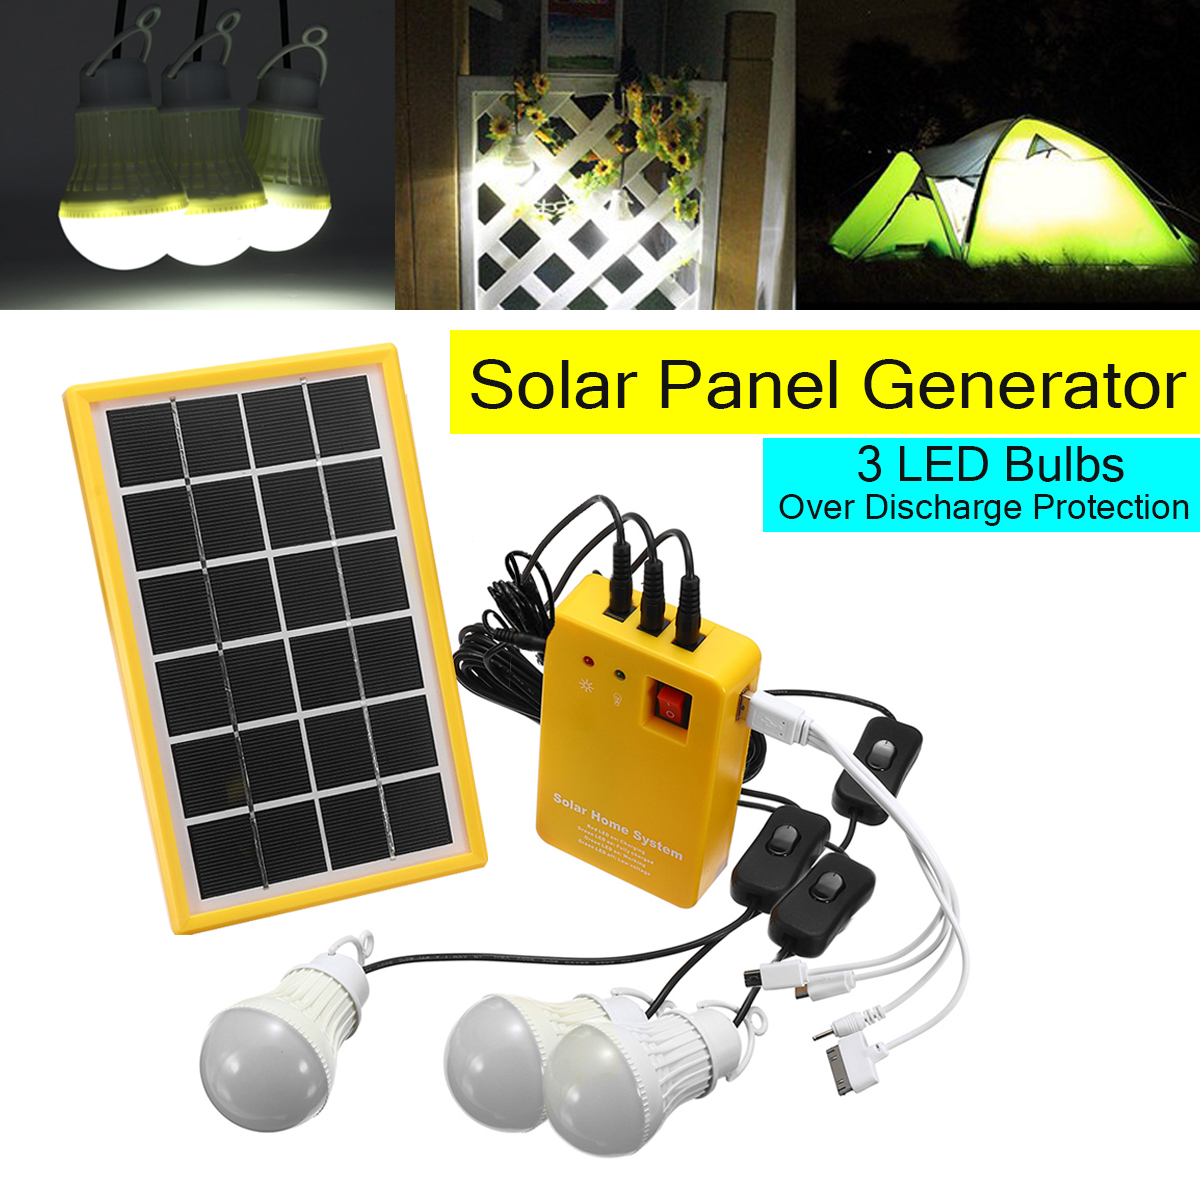 5V USB Charger Home System Solar Power Panel Generator Kit with 3 LED Bulbs Light Indoor Outdoor Lighting Over Discharge Protect